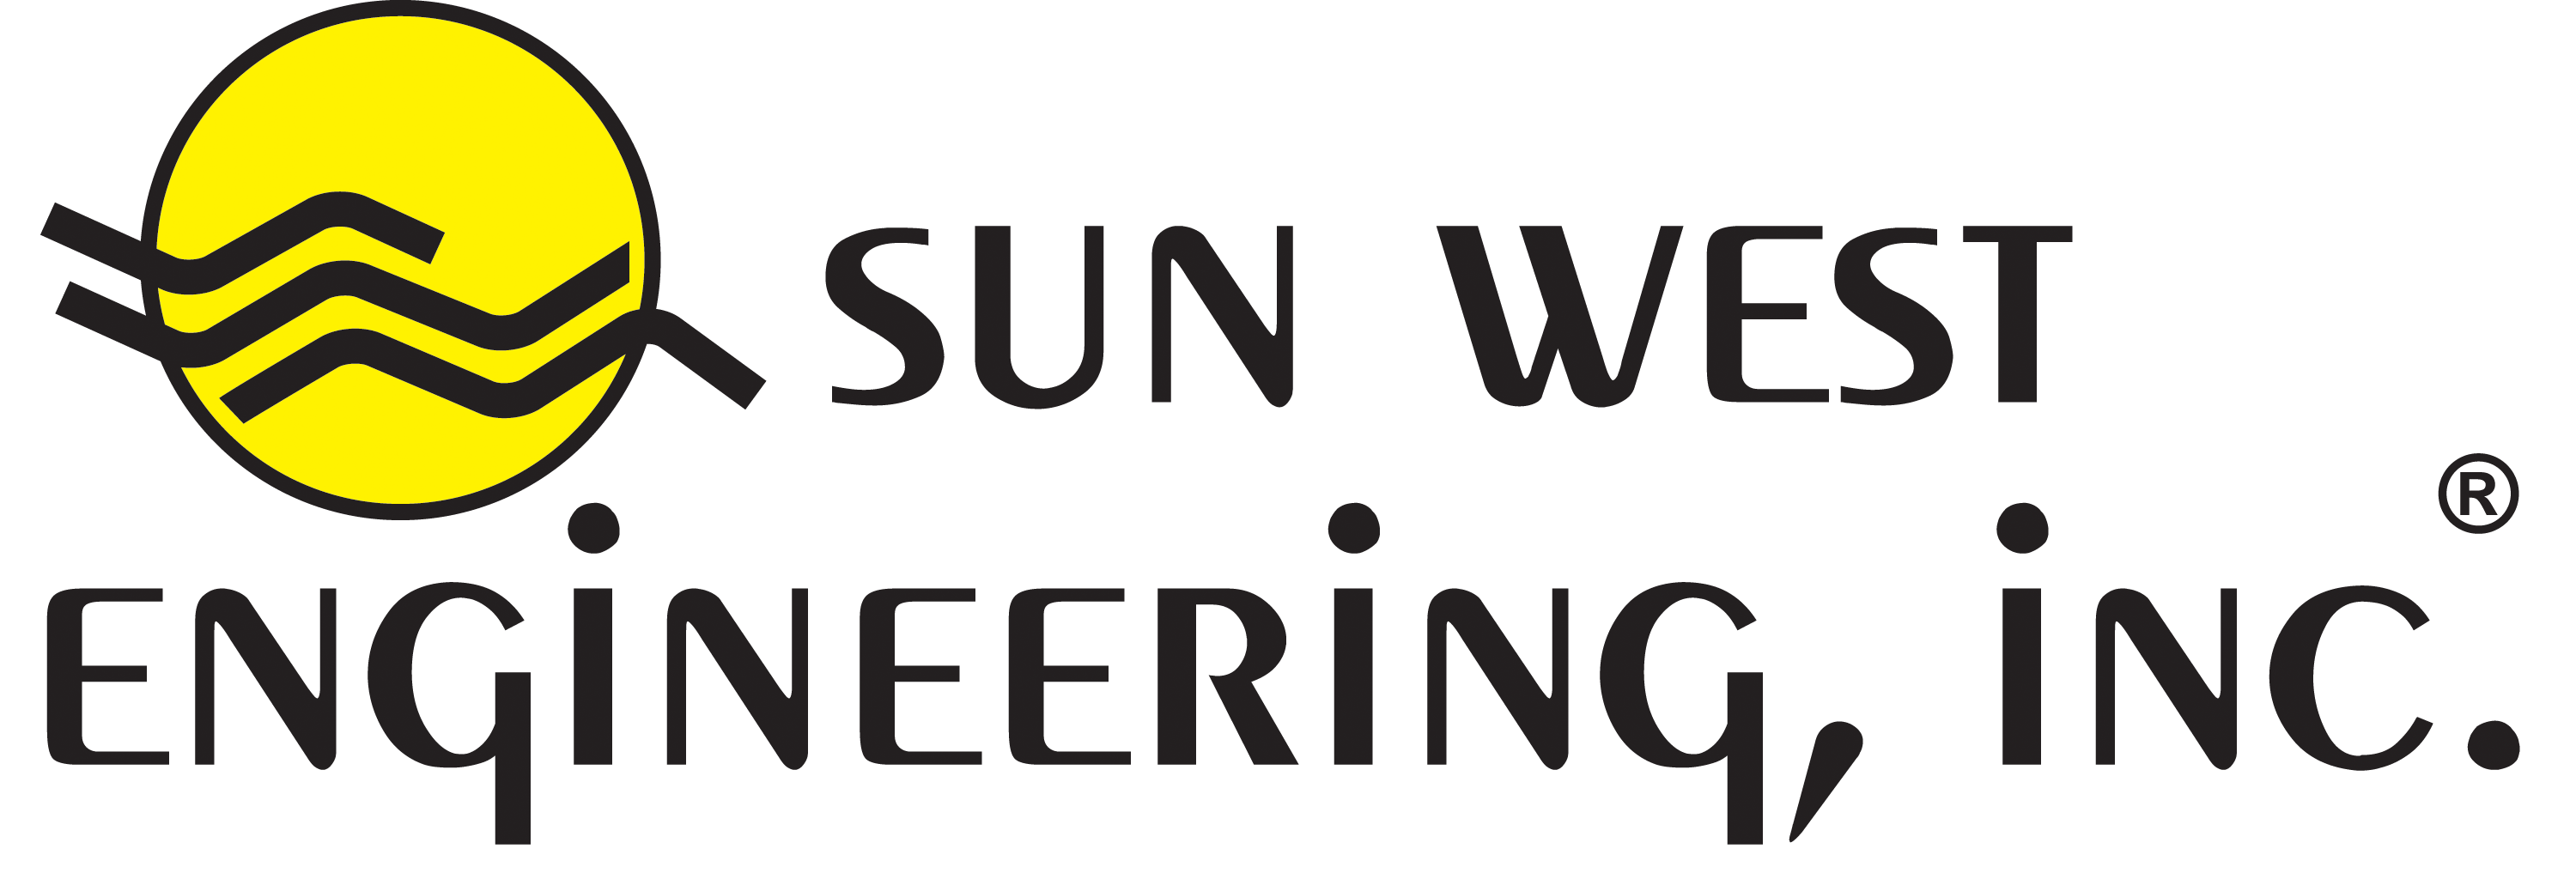 Sunwest Engineering